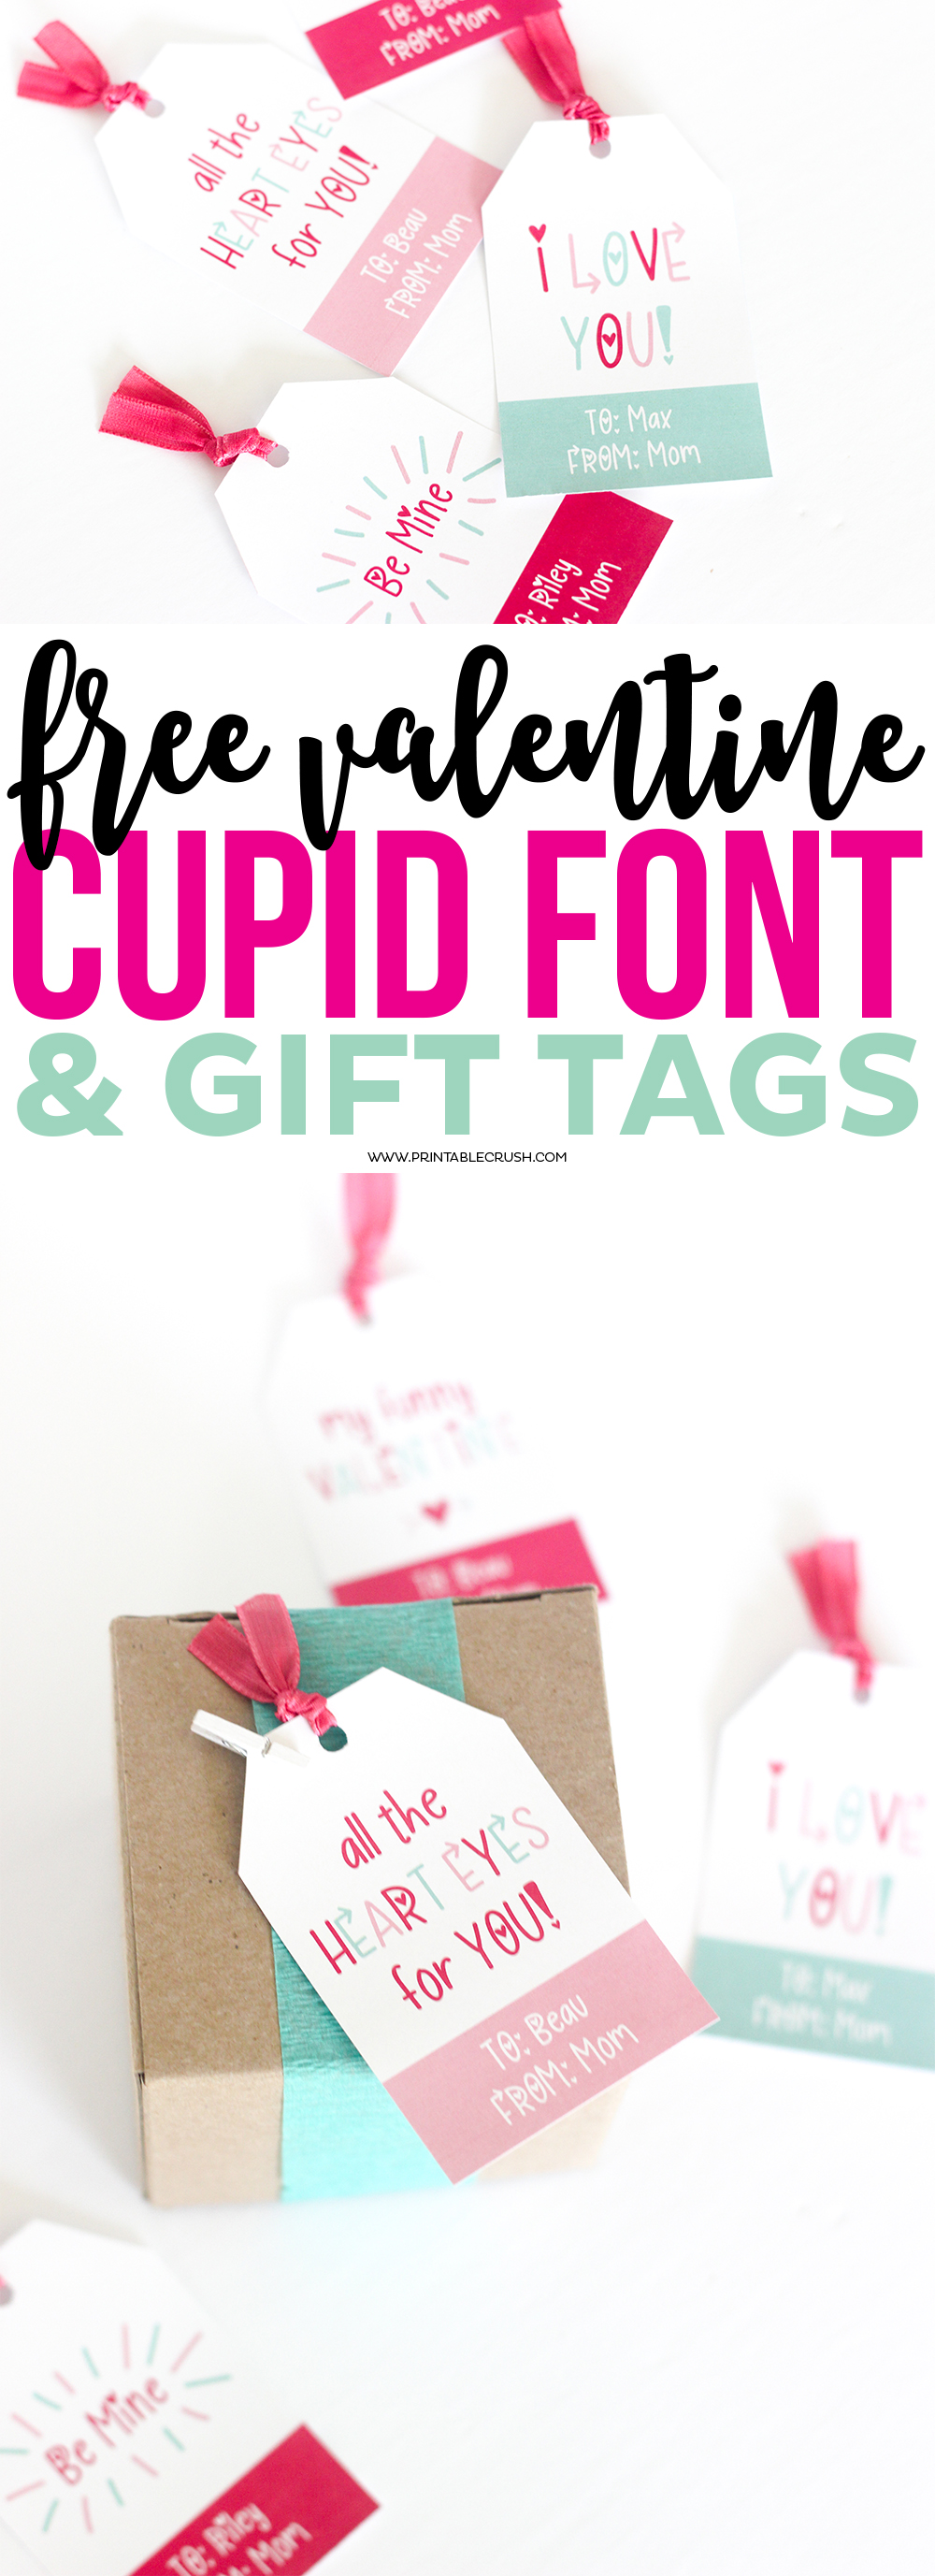 Download this Hand Lettered FREE Valentine Font so you can customize these Cute Gift Tags for an adorable Valentine gift!